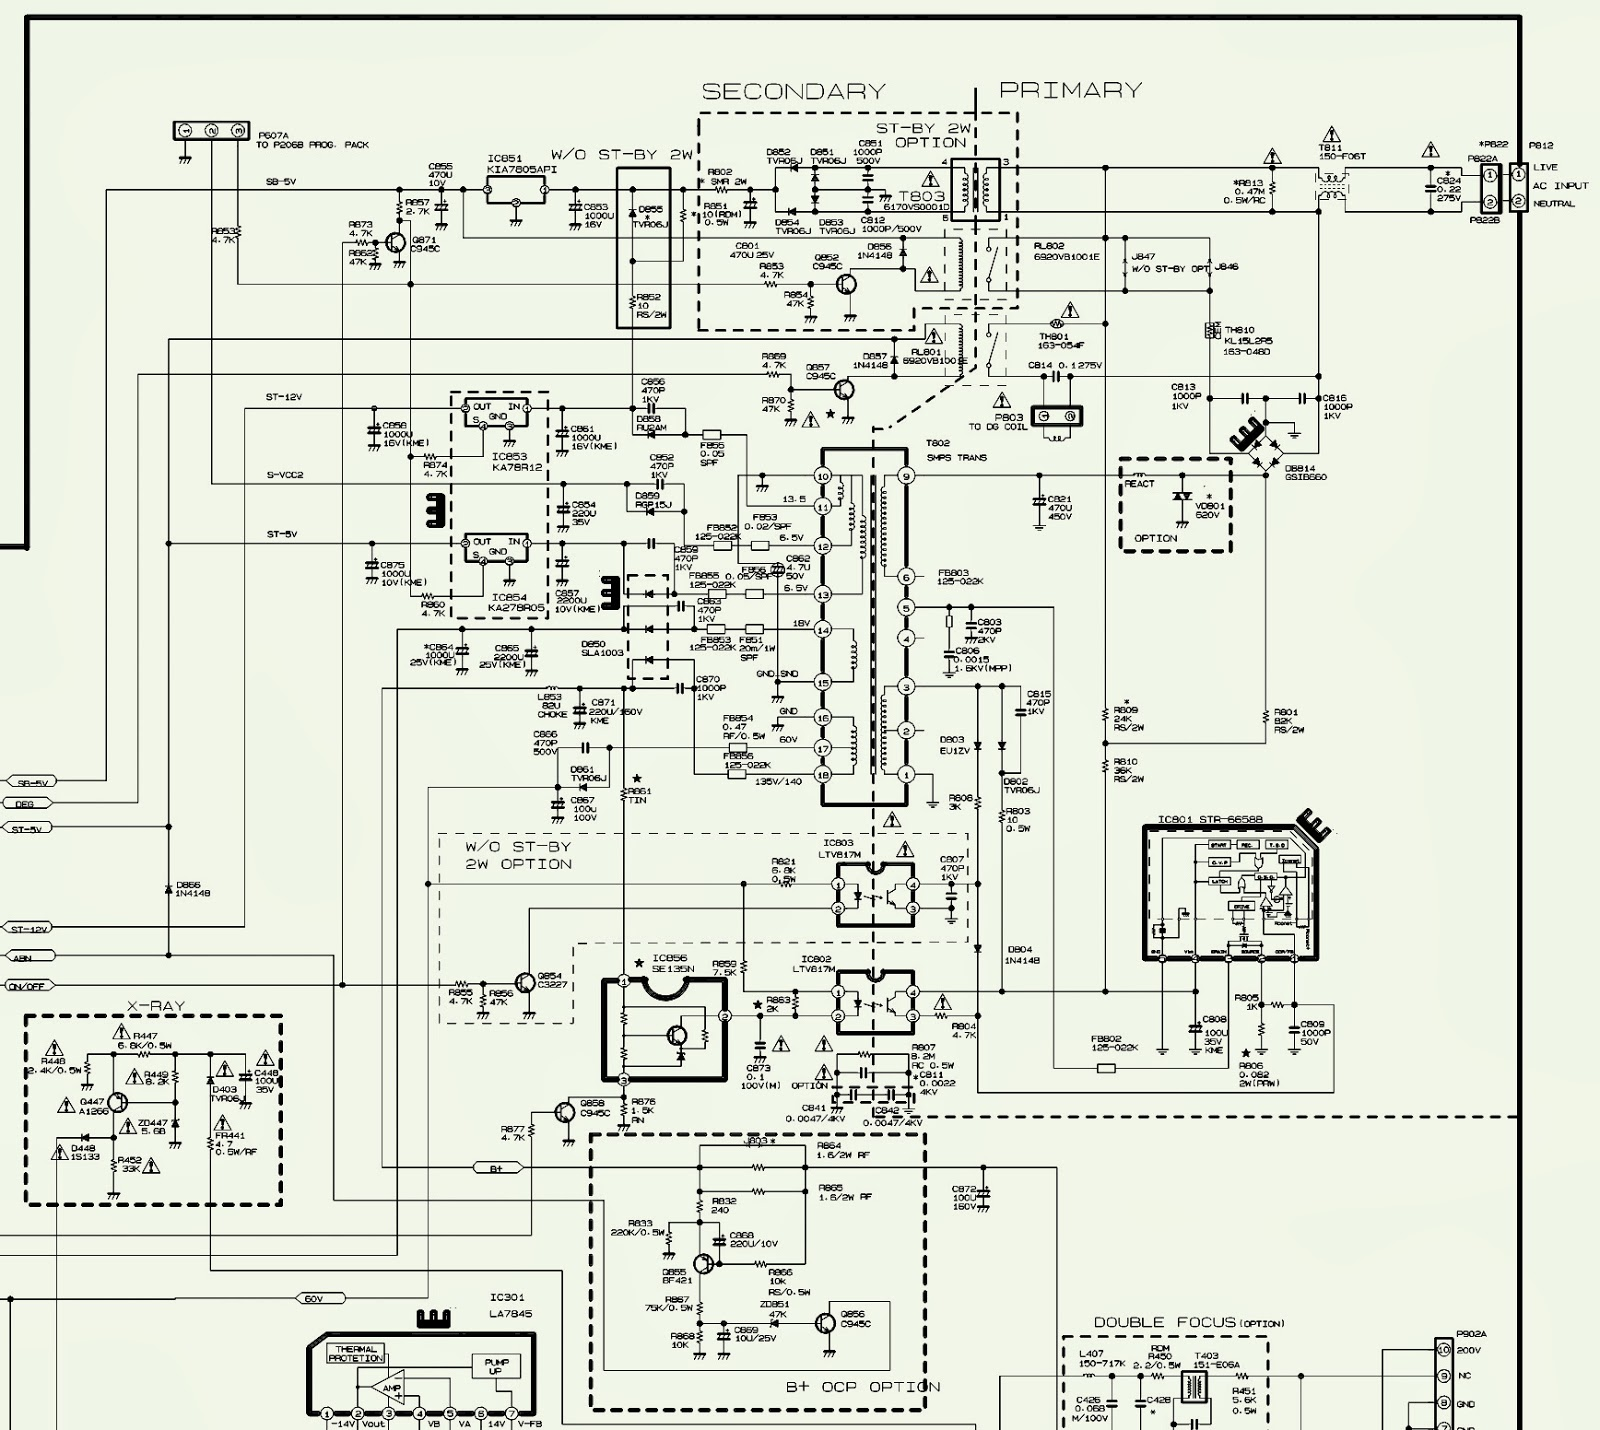 small resolution of wiring diagram lg tv wiring diagram blogs maytag washer wiring diagram wiring diagram lg tv